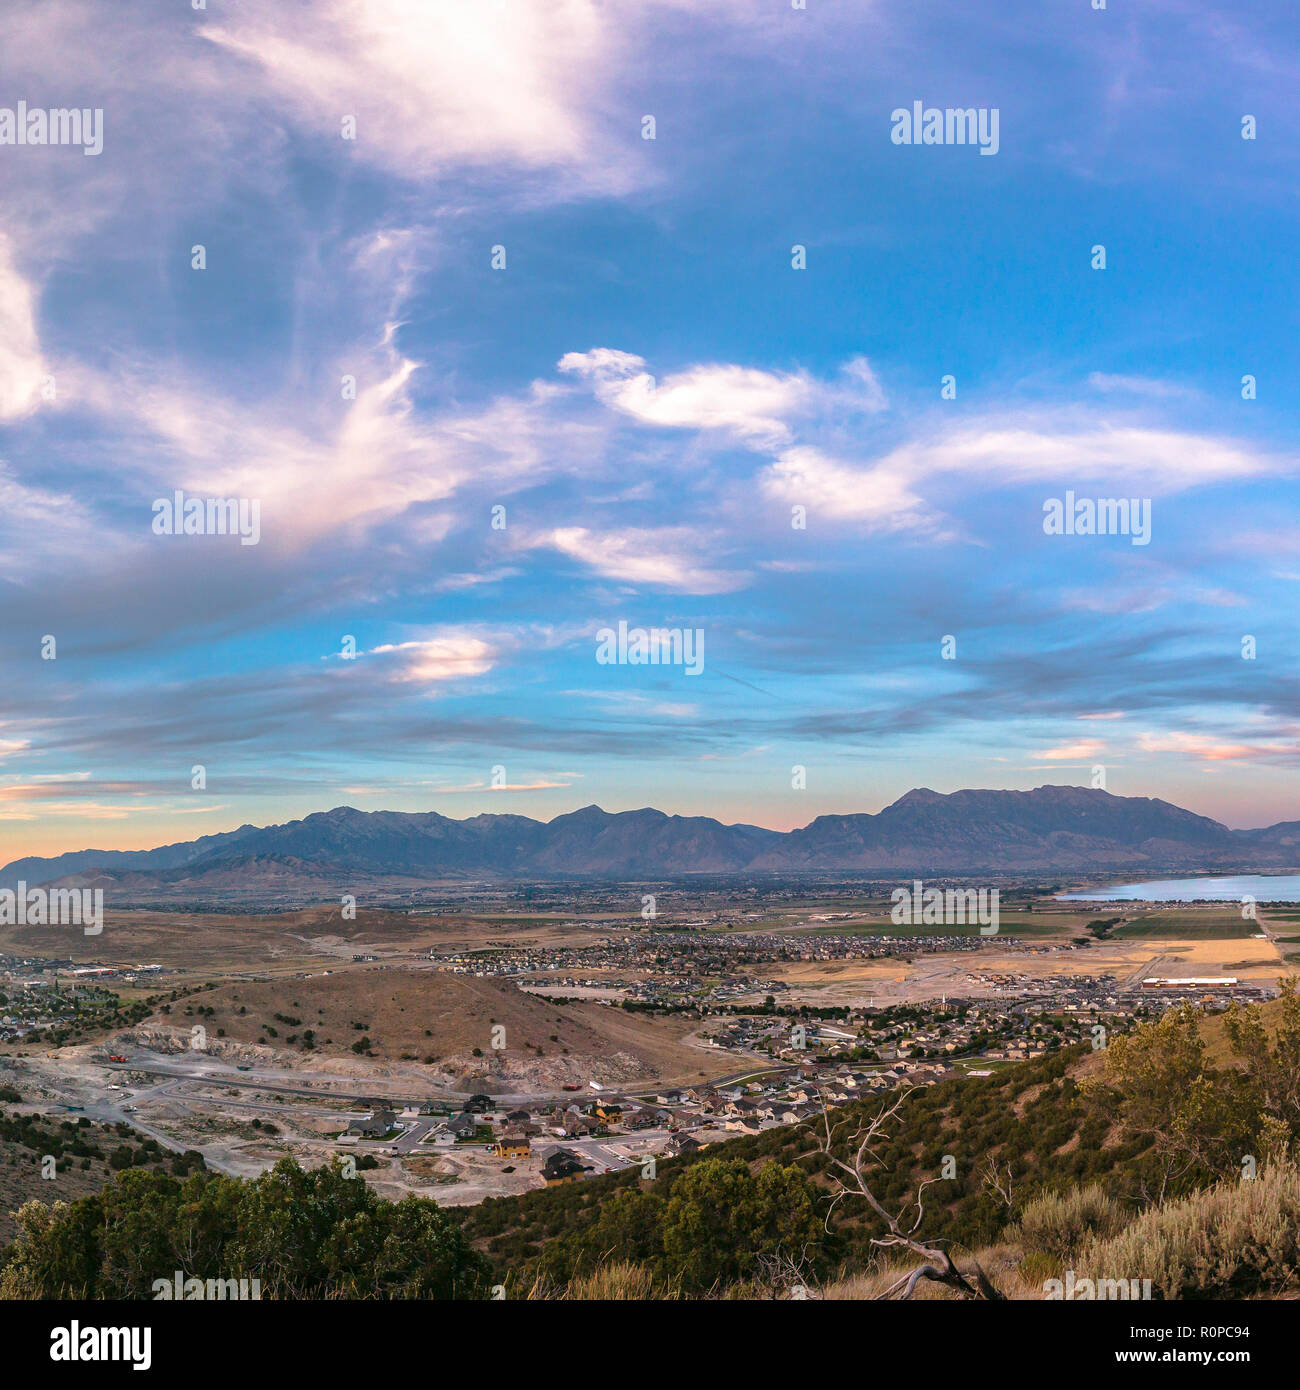 Utah Valley in Eagle Mountain under a cloudy sky - Stock Image